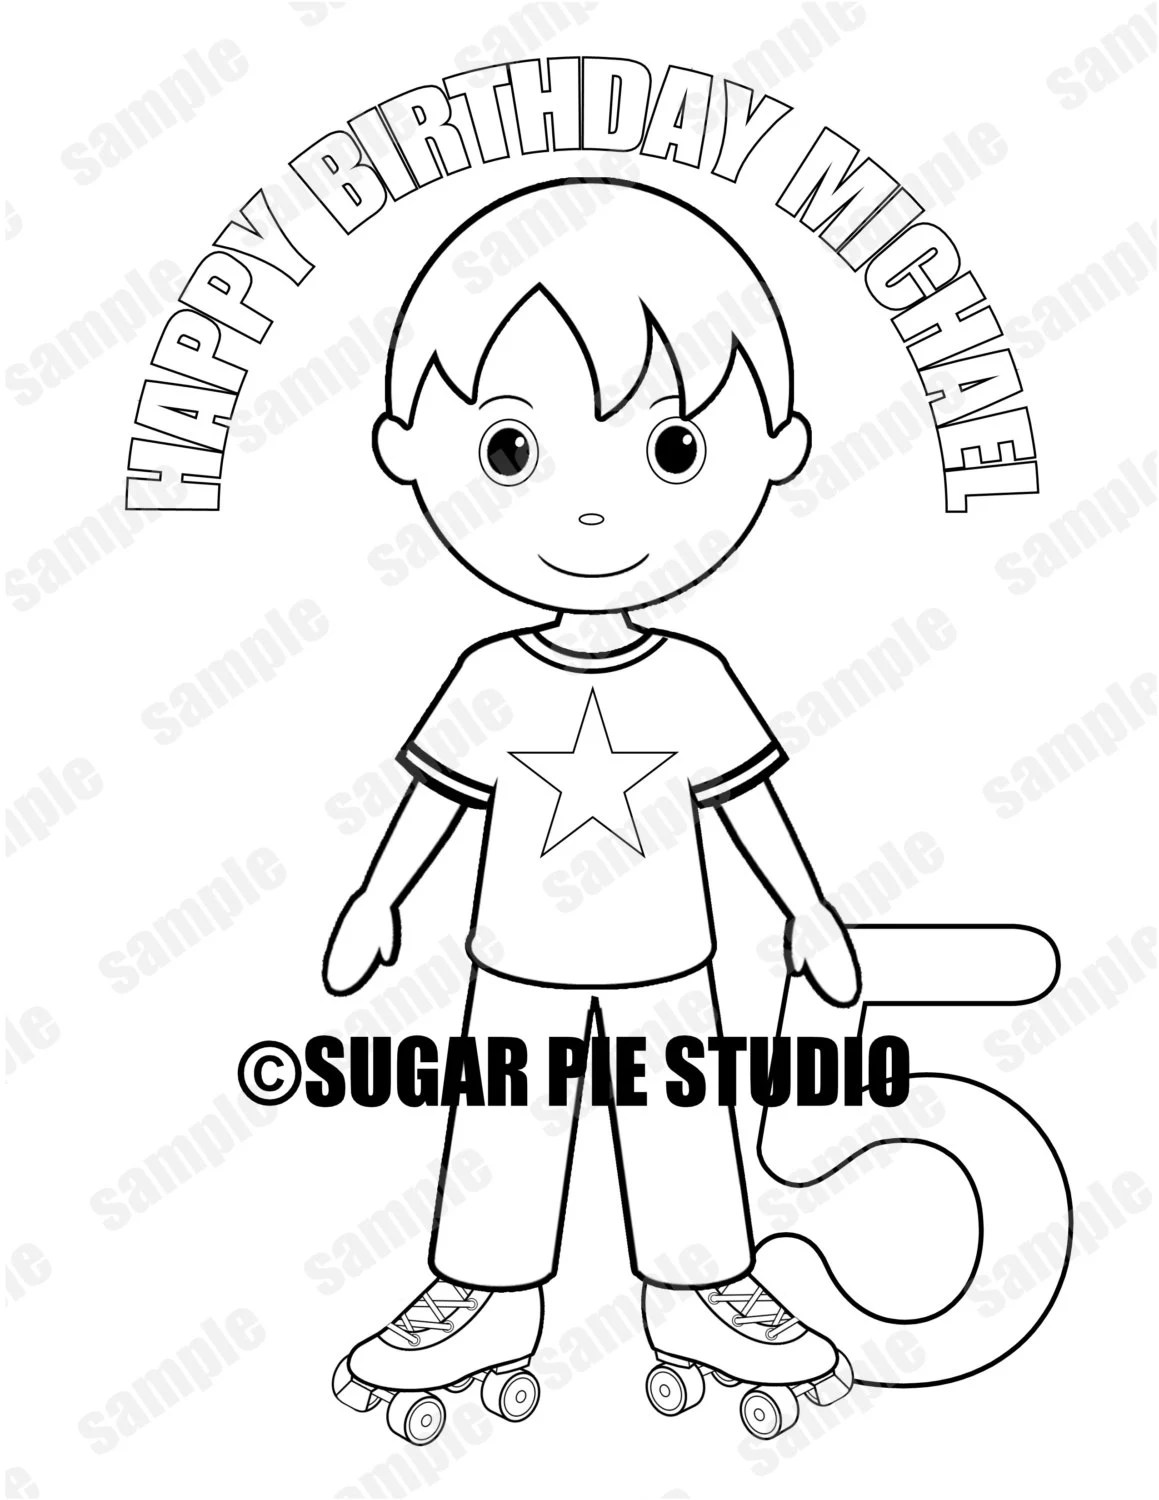 Roller skating coloring page activity Birthday Party Favor